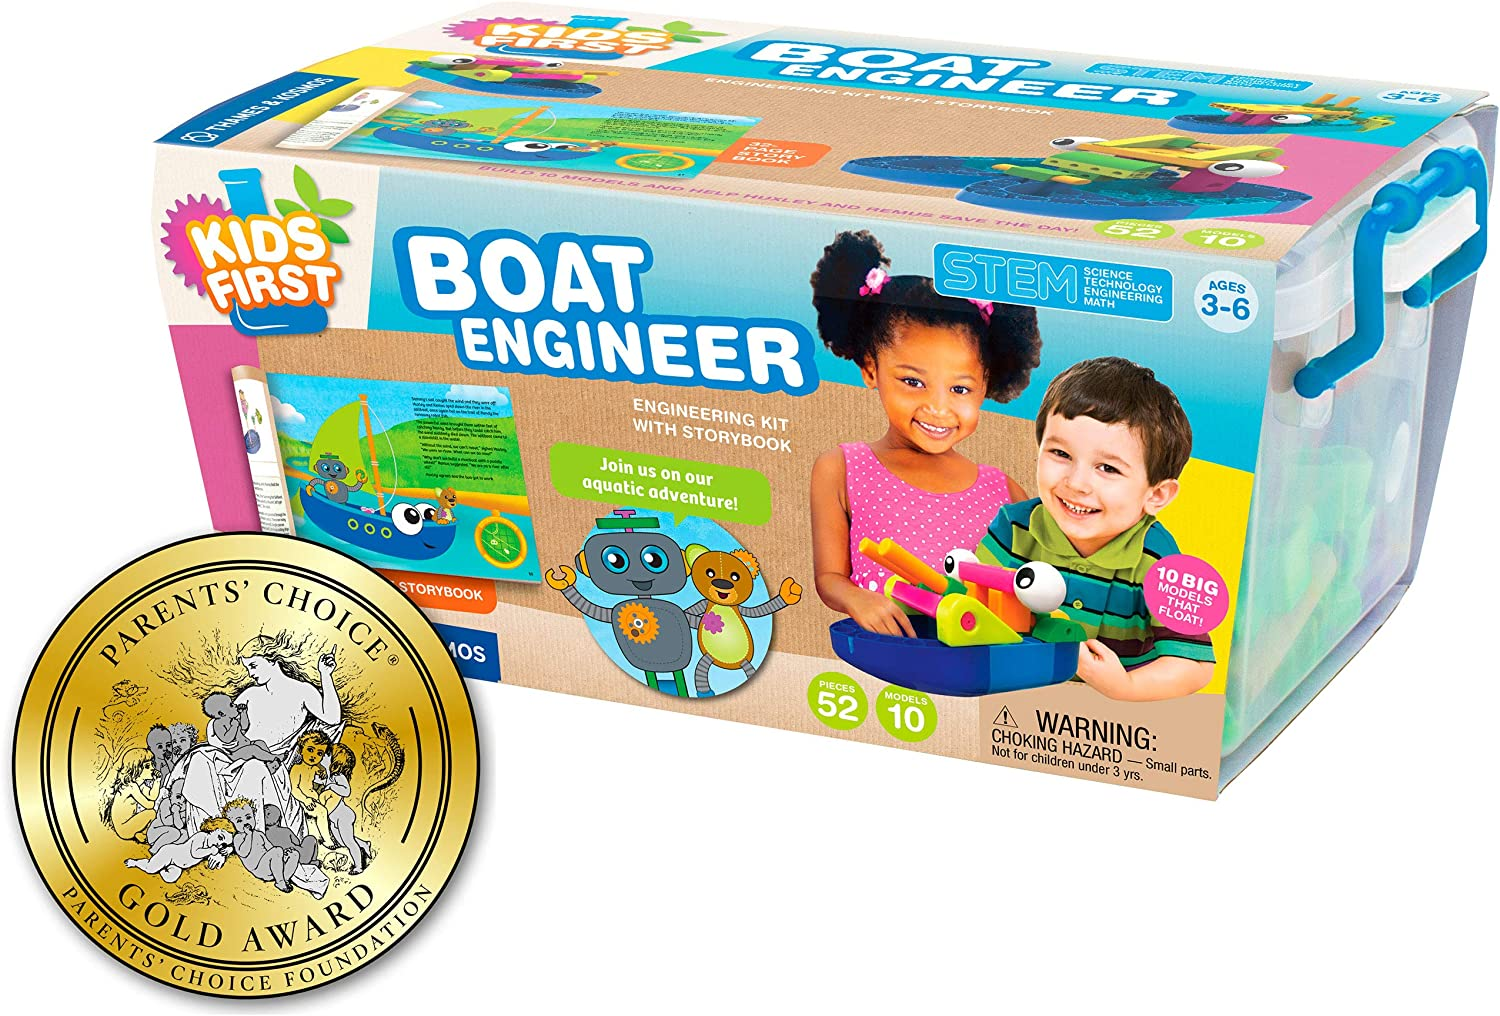 Kids First Boat Engineer Science Kit Toy For Girls And Boys GREAT Bathtub Gift